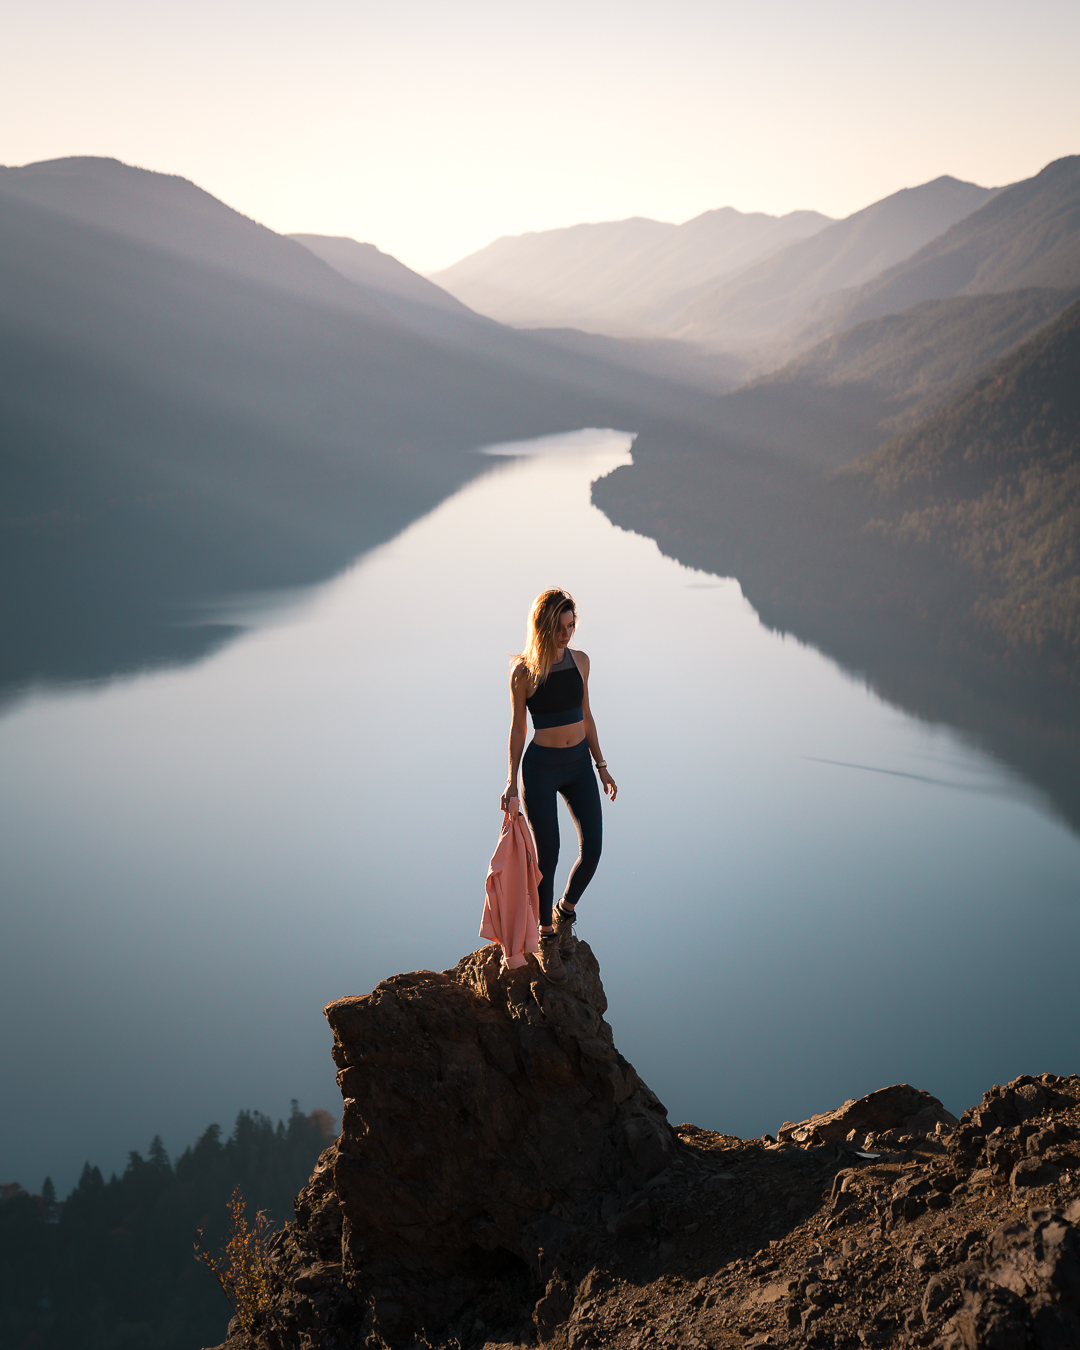 Enjoying the views from the top of the Mount Storm King hike on the Olympic Peninsula in Washington.